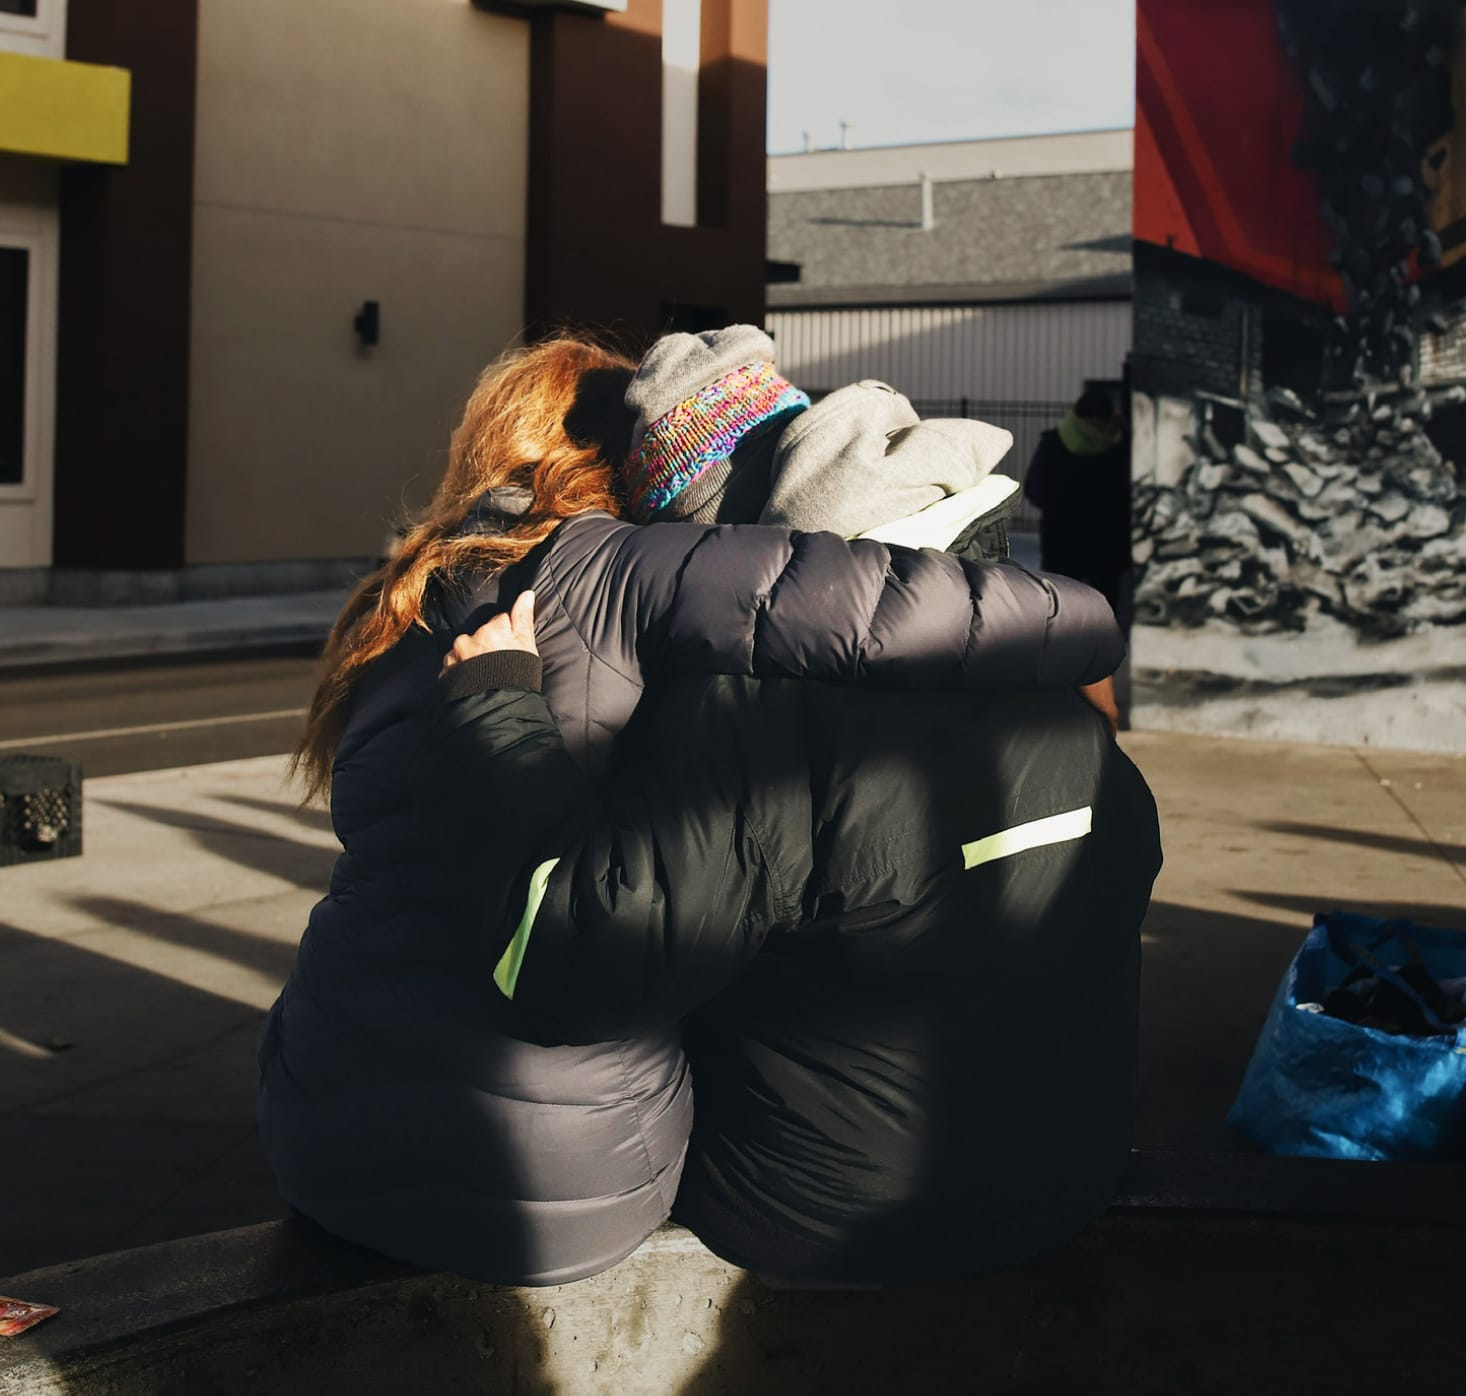 A Neighbor Idaho volunteer hugging a homeless person